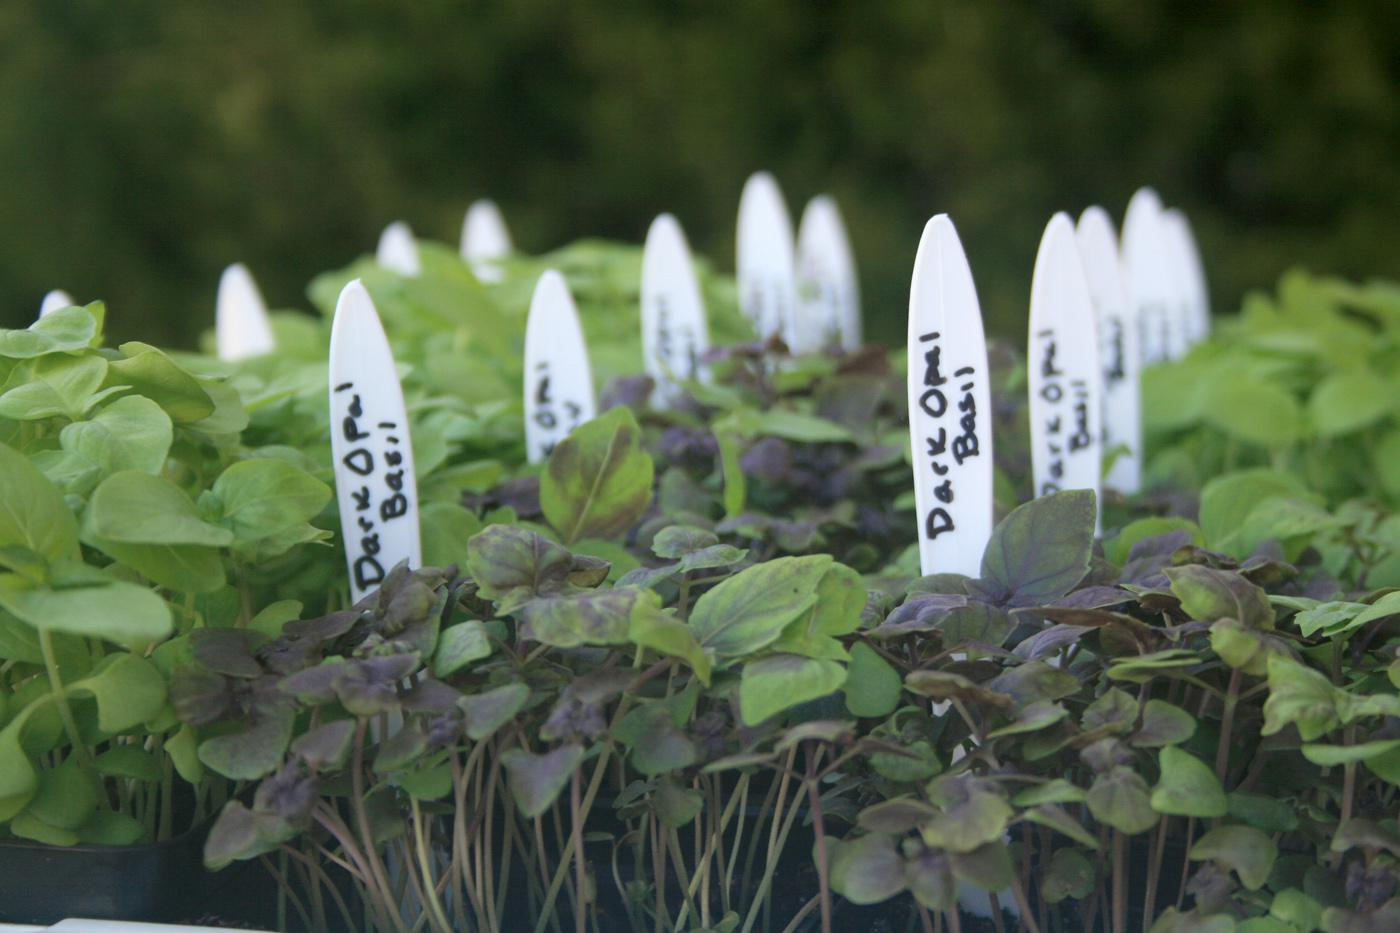 Be creative when making plant tags for the garden. These plastic knives are just right for plant identification.